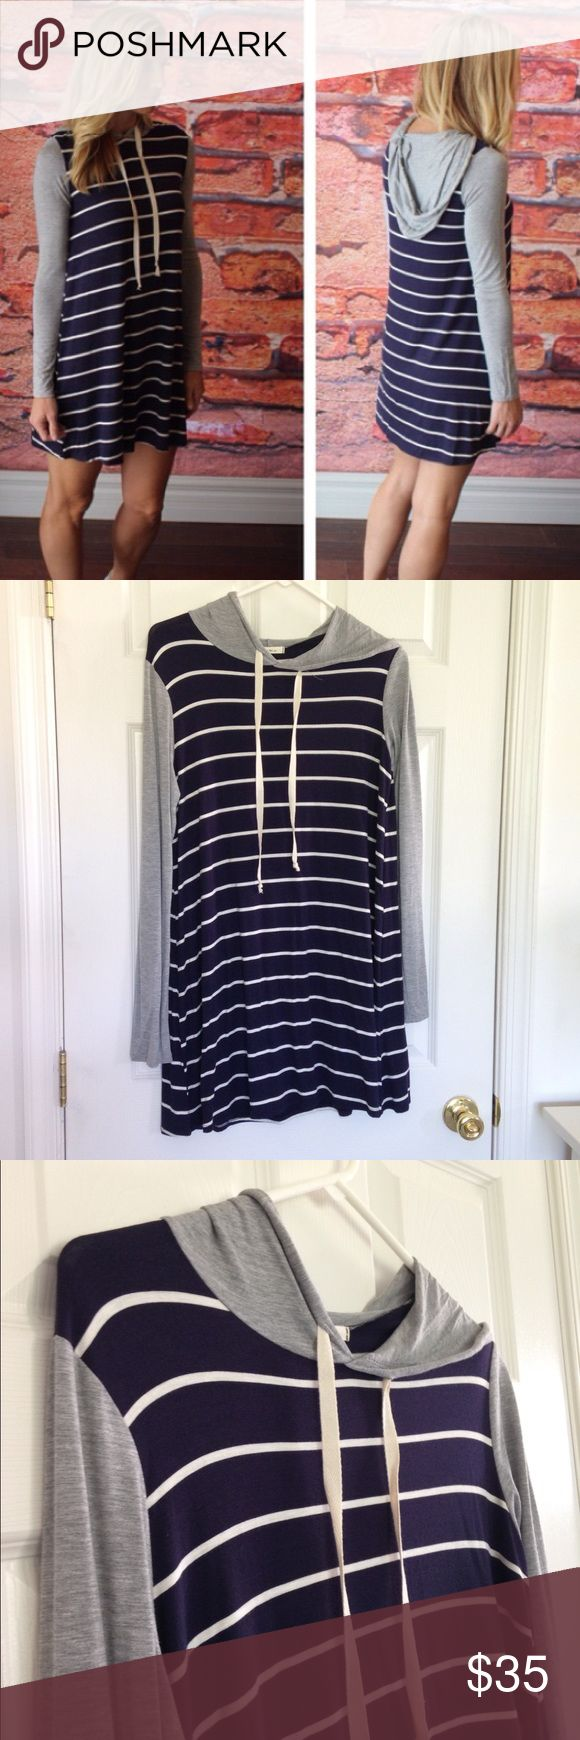 """Navy Striped Hoodie Dress So cute and comfy! Stretchy. 96% rayon and 4% spandex. Measurement laying flat: bust: 20"""" length: 34"""". No stains or holes. Mon Ami Dresses Midi"""